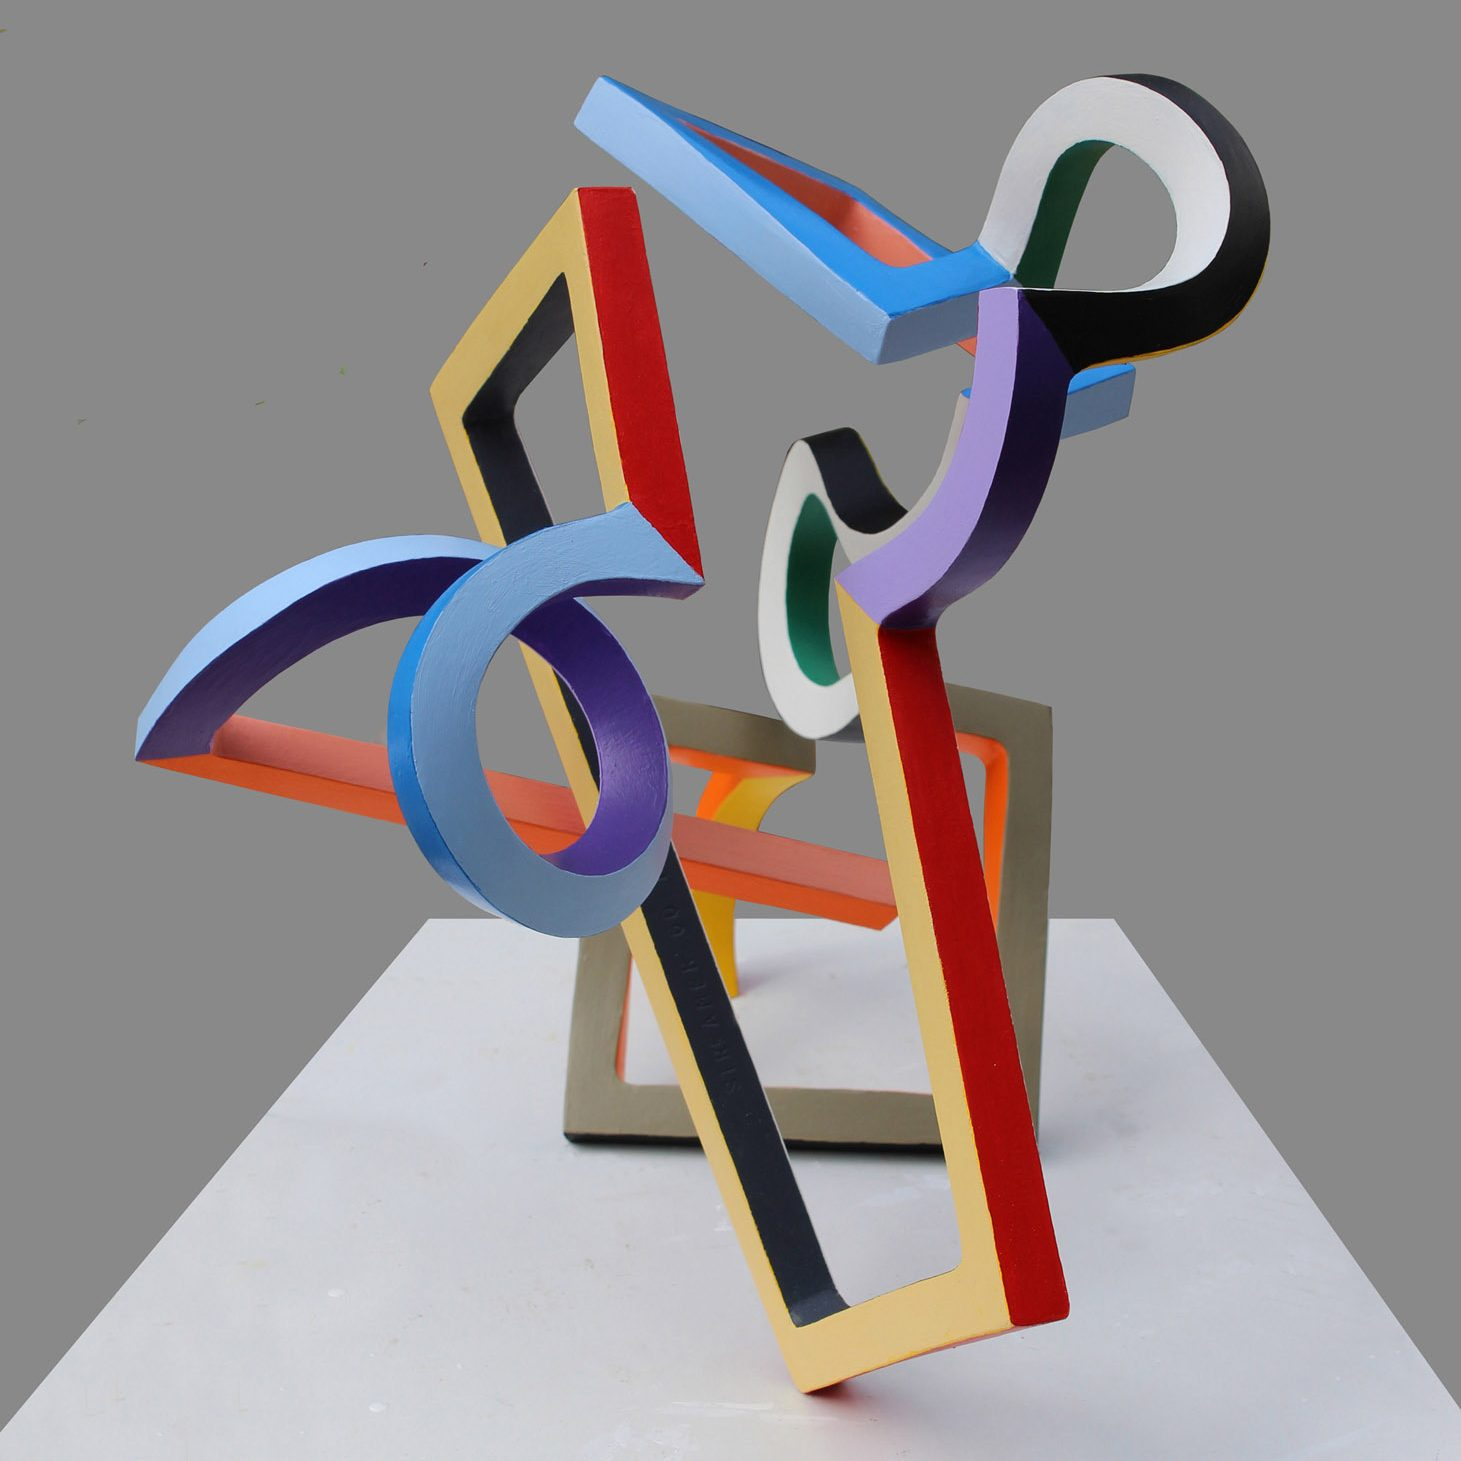 Movement, Contradictions and the Possibilities of Matter: Sculptures by Frans Muhren